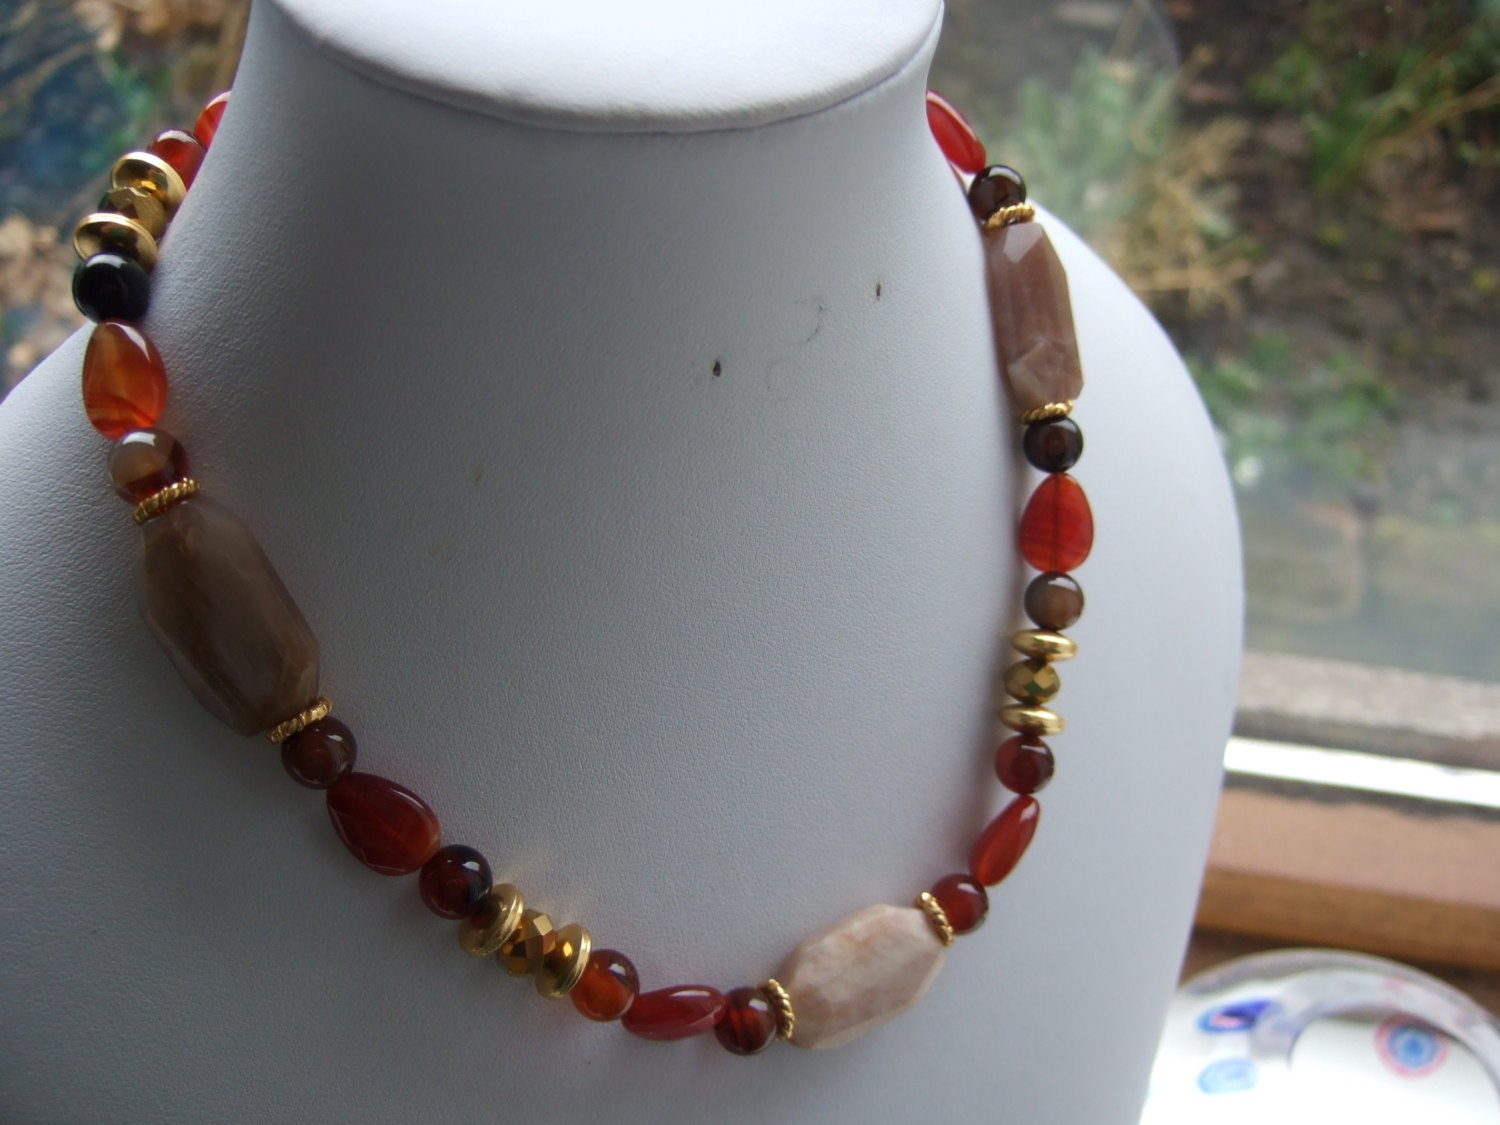 Dyed Agate Natural Sunstone Slab Gold Glass Crystal and Gold Plated Spacer Bead 16 Necklace.